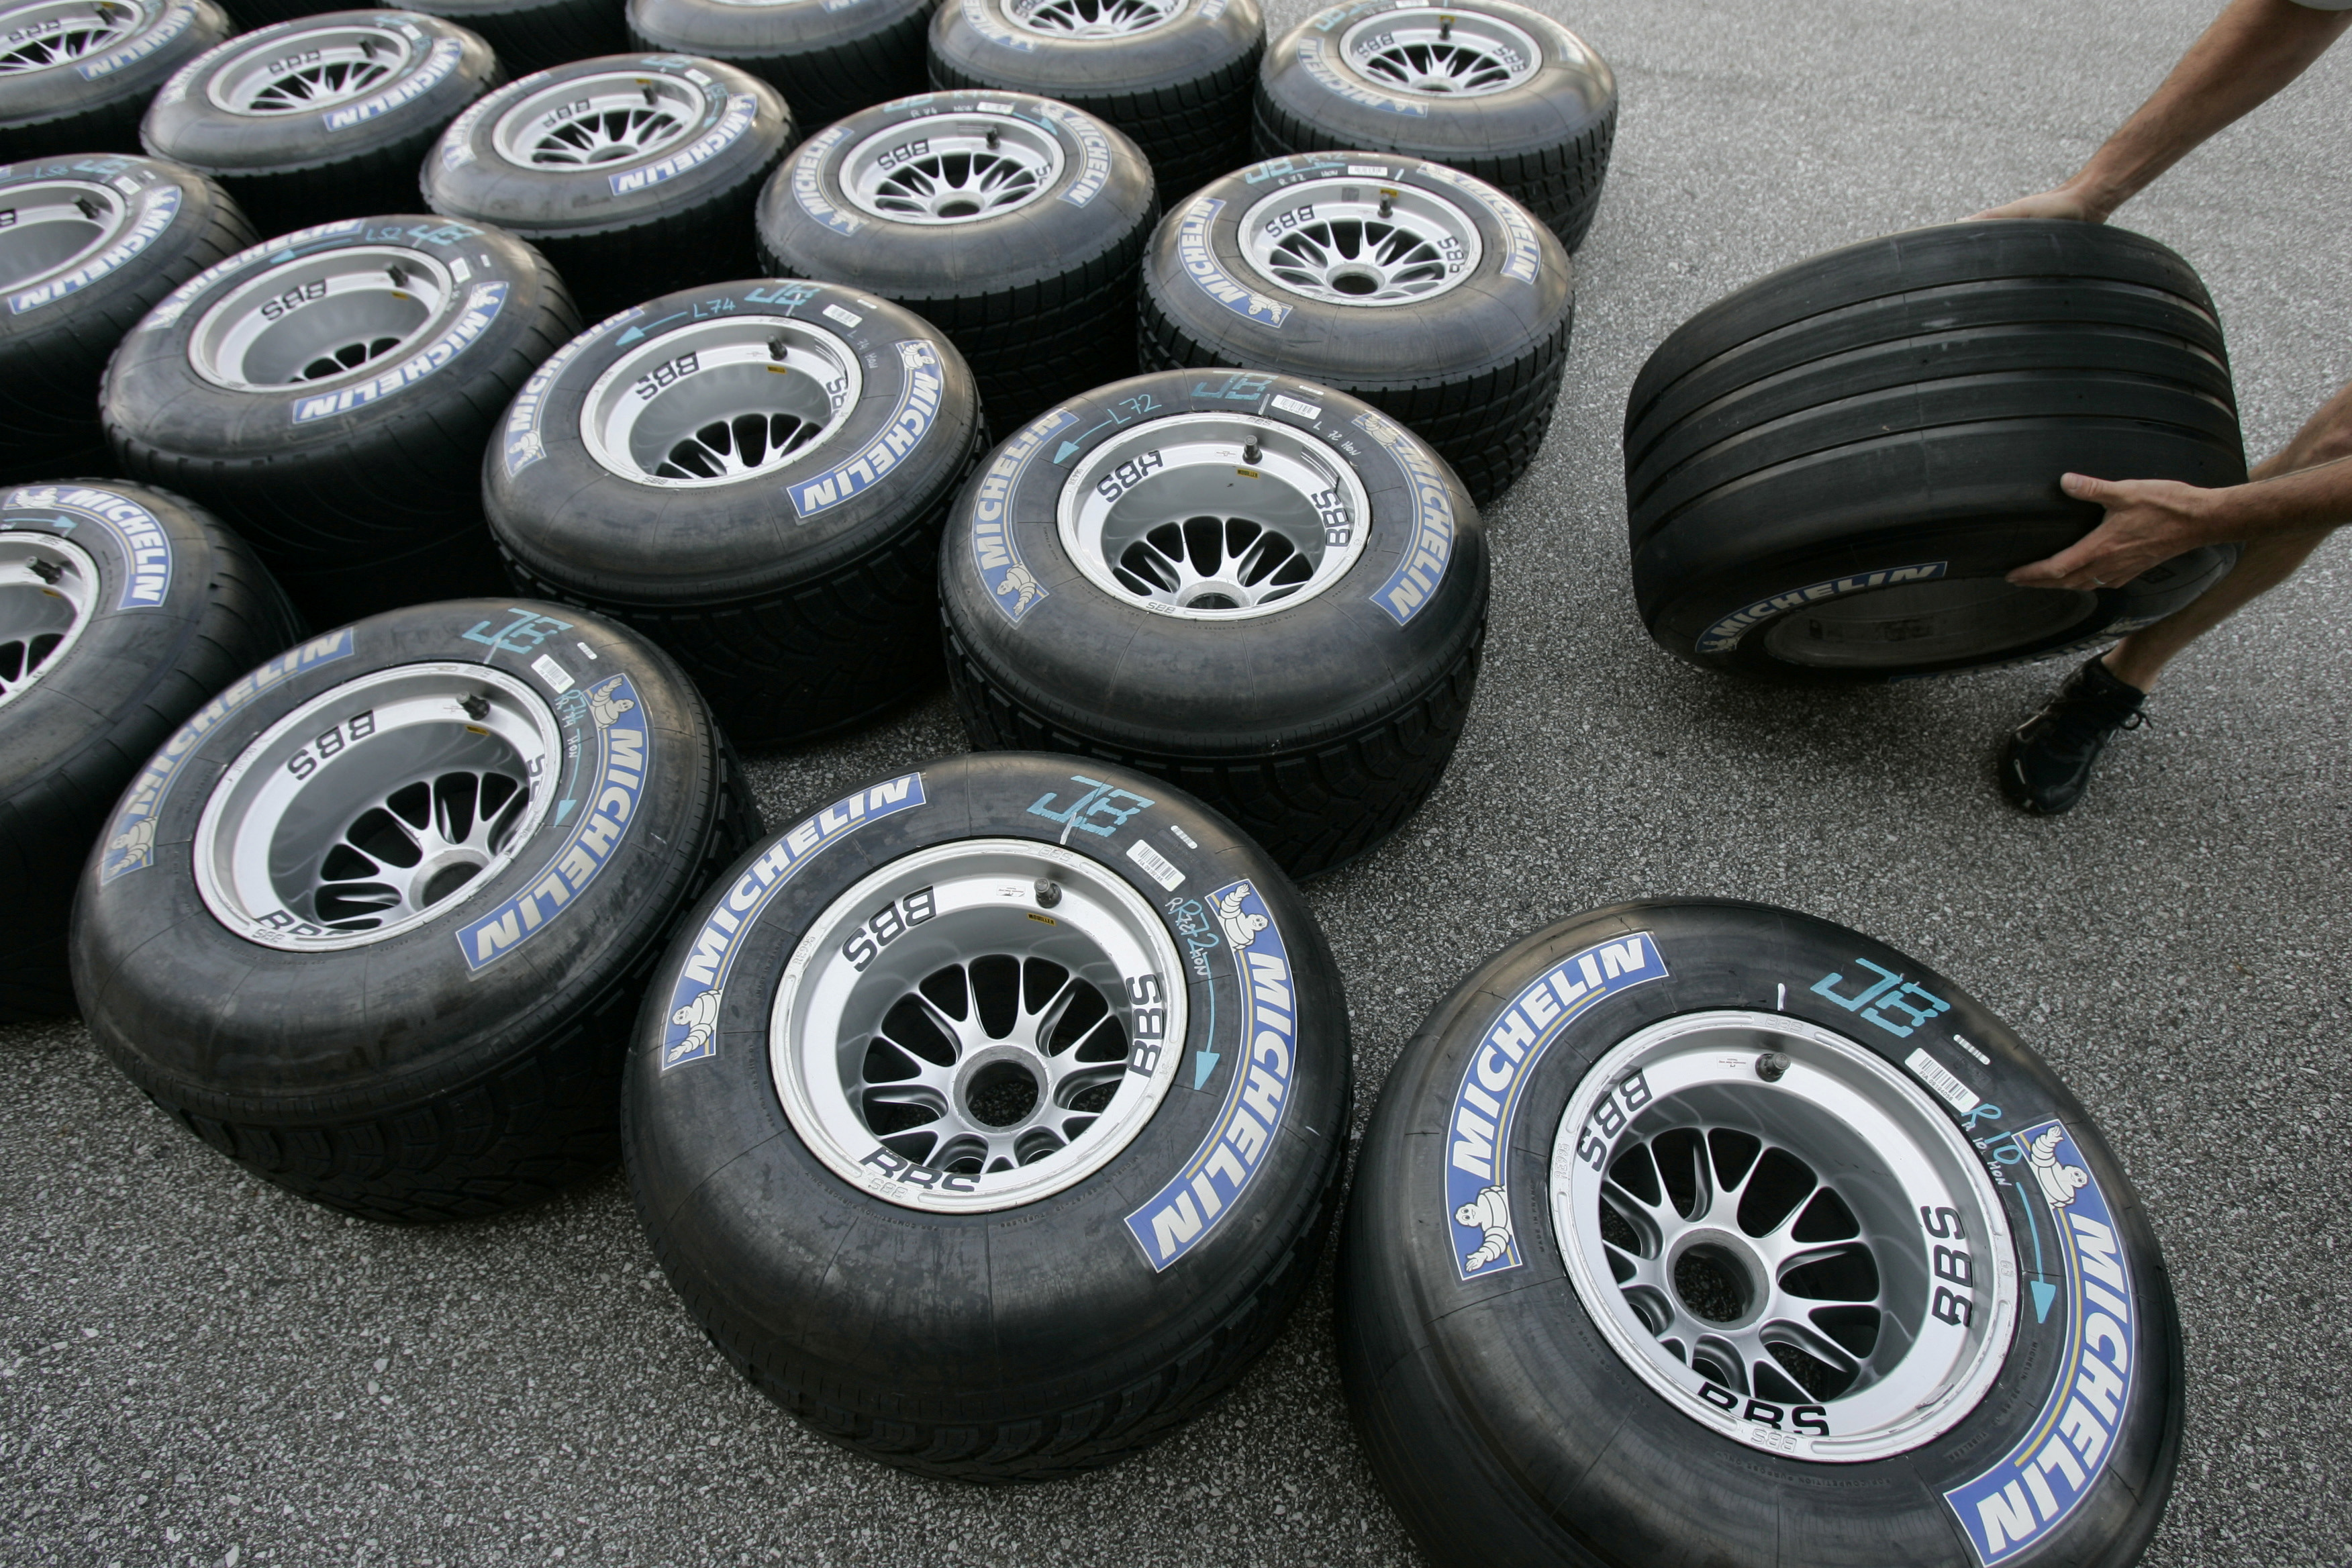 Michelin Formula One tires are prepared for racing in the pits at the Indianapolis Motor Speedway, June 29, 2006.   REUTERS/John Gress/File Photo